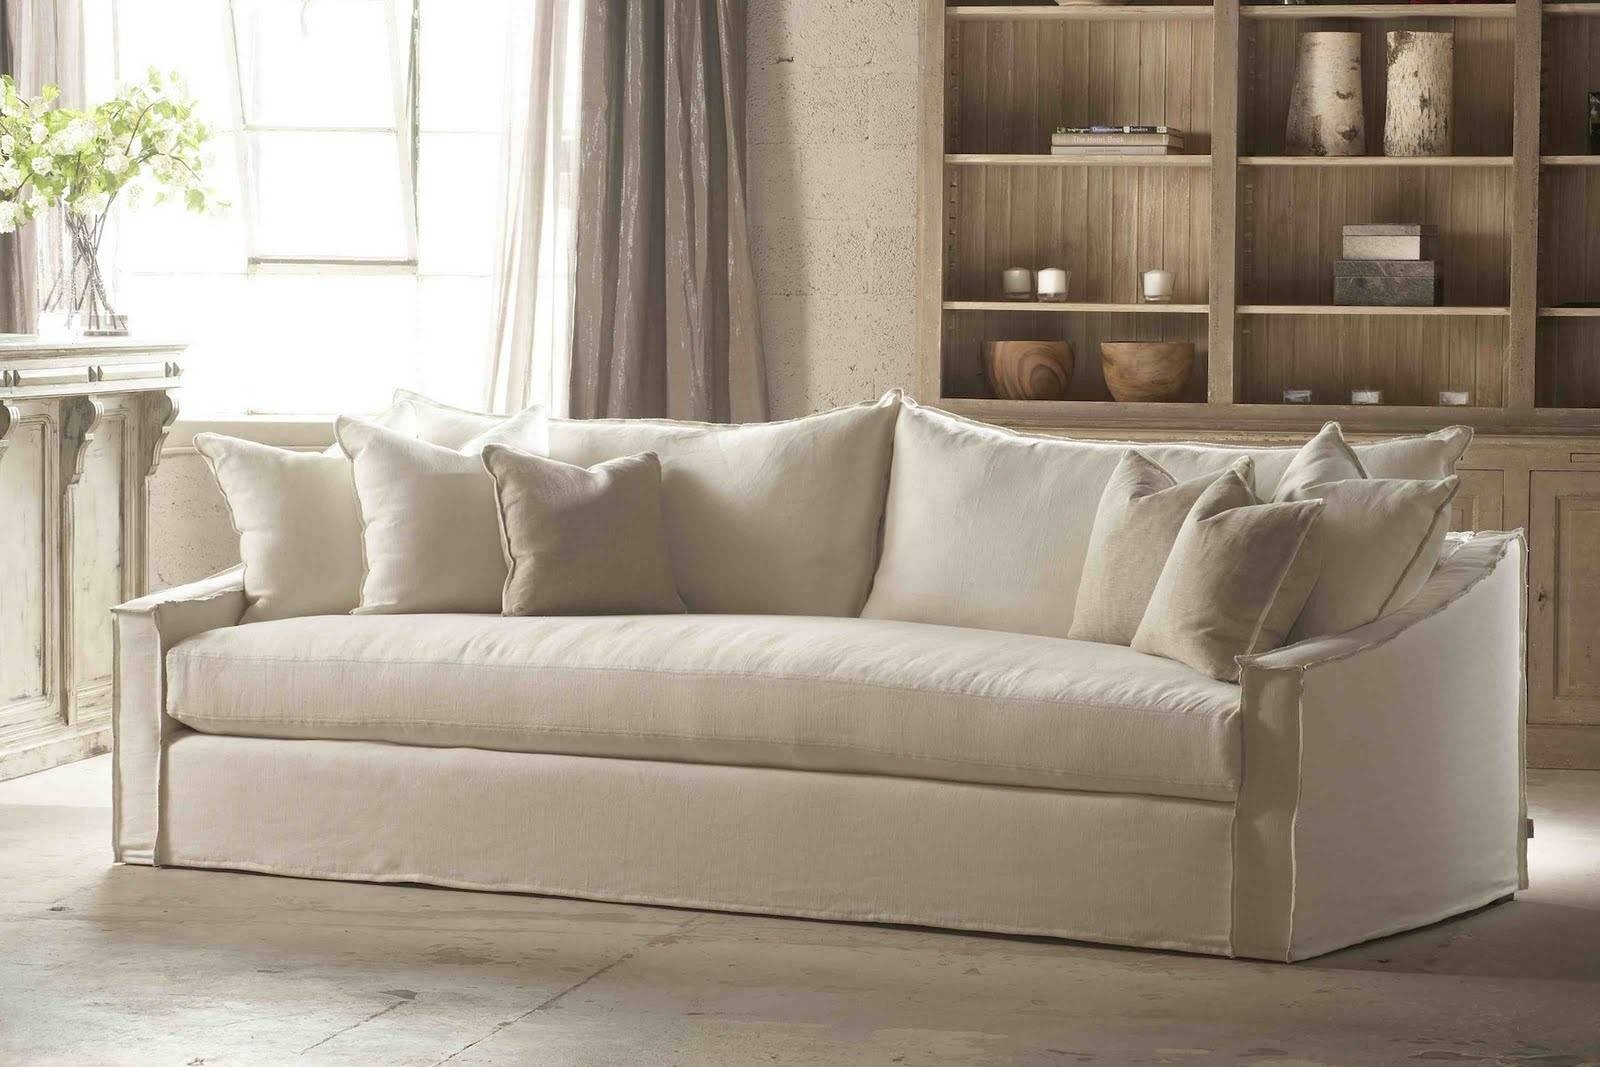 Furniture: Pretty Slipcovered Sectional Sofa For Comfy Your Living throughout Contemporary Sofa Slipcovers (Image 16 of 30)